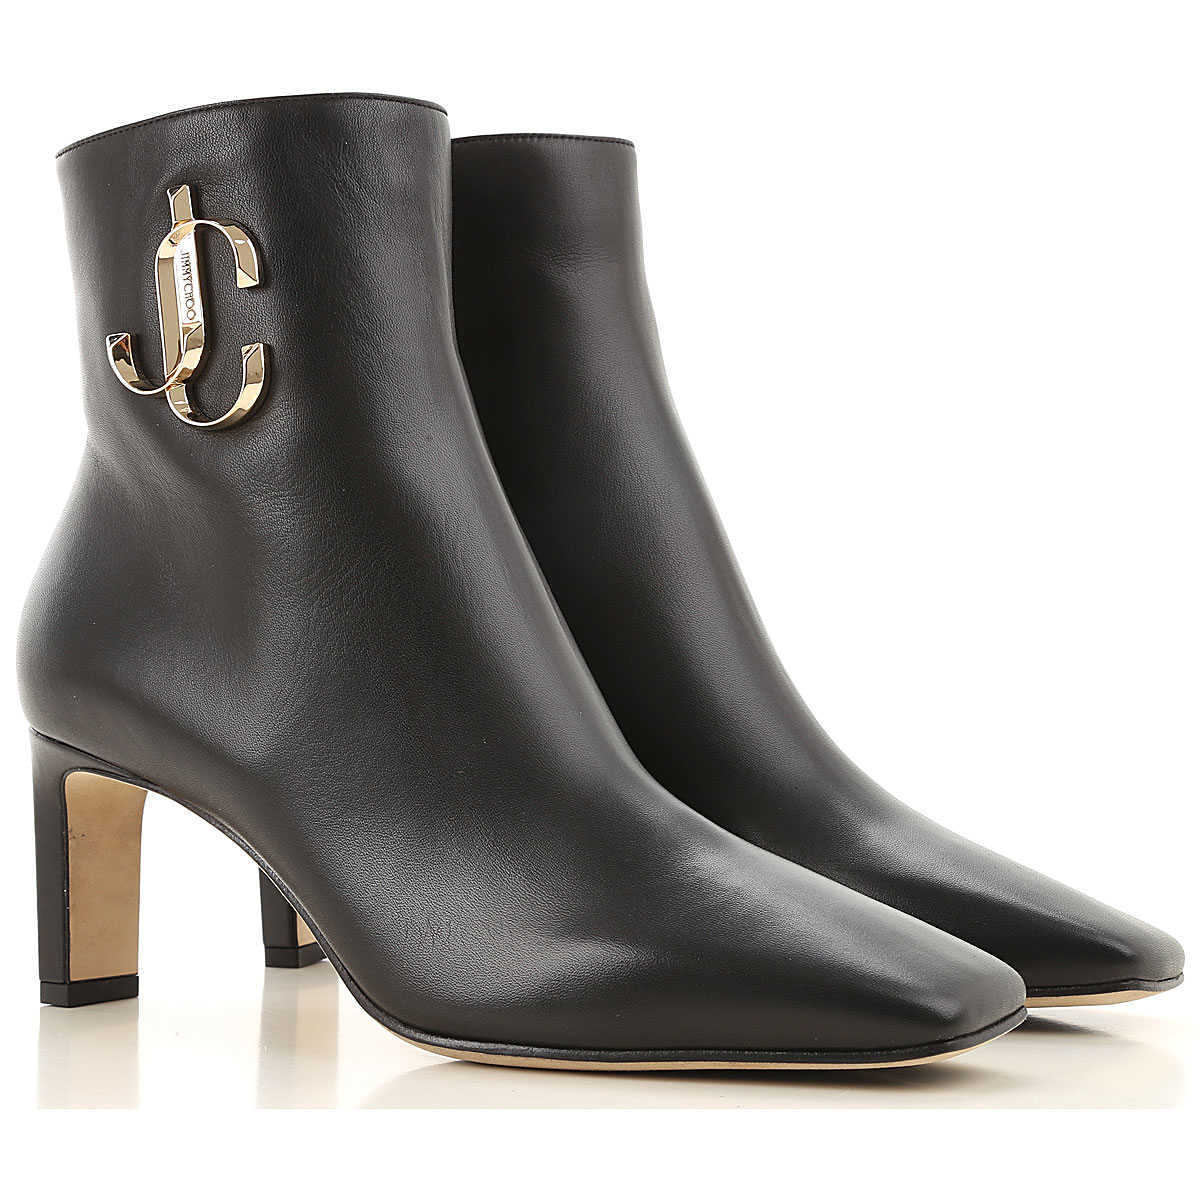 Jimmy Choo Boots for Women 3.5 4 4.5 5.5 6 6.5 8.5 Booties UK - GOOFASH